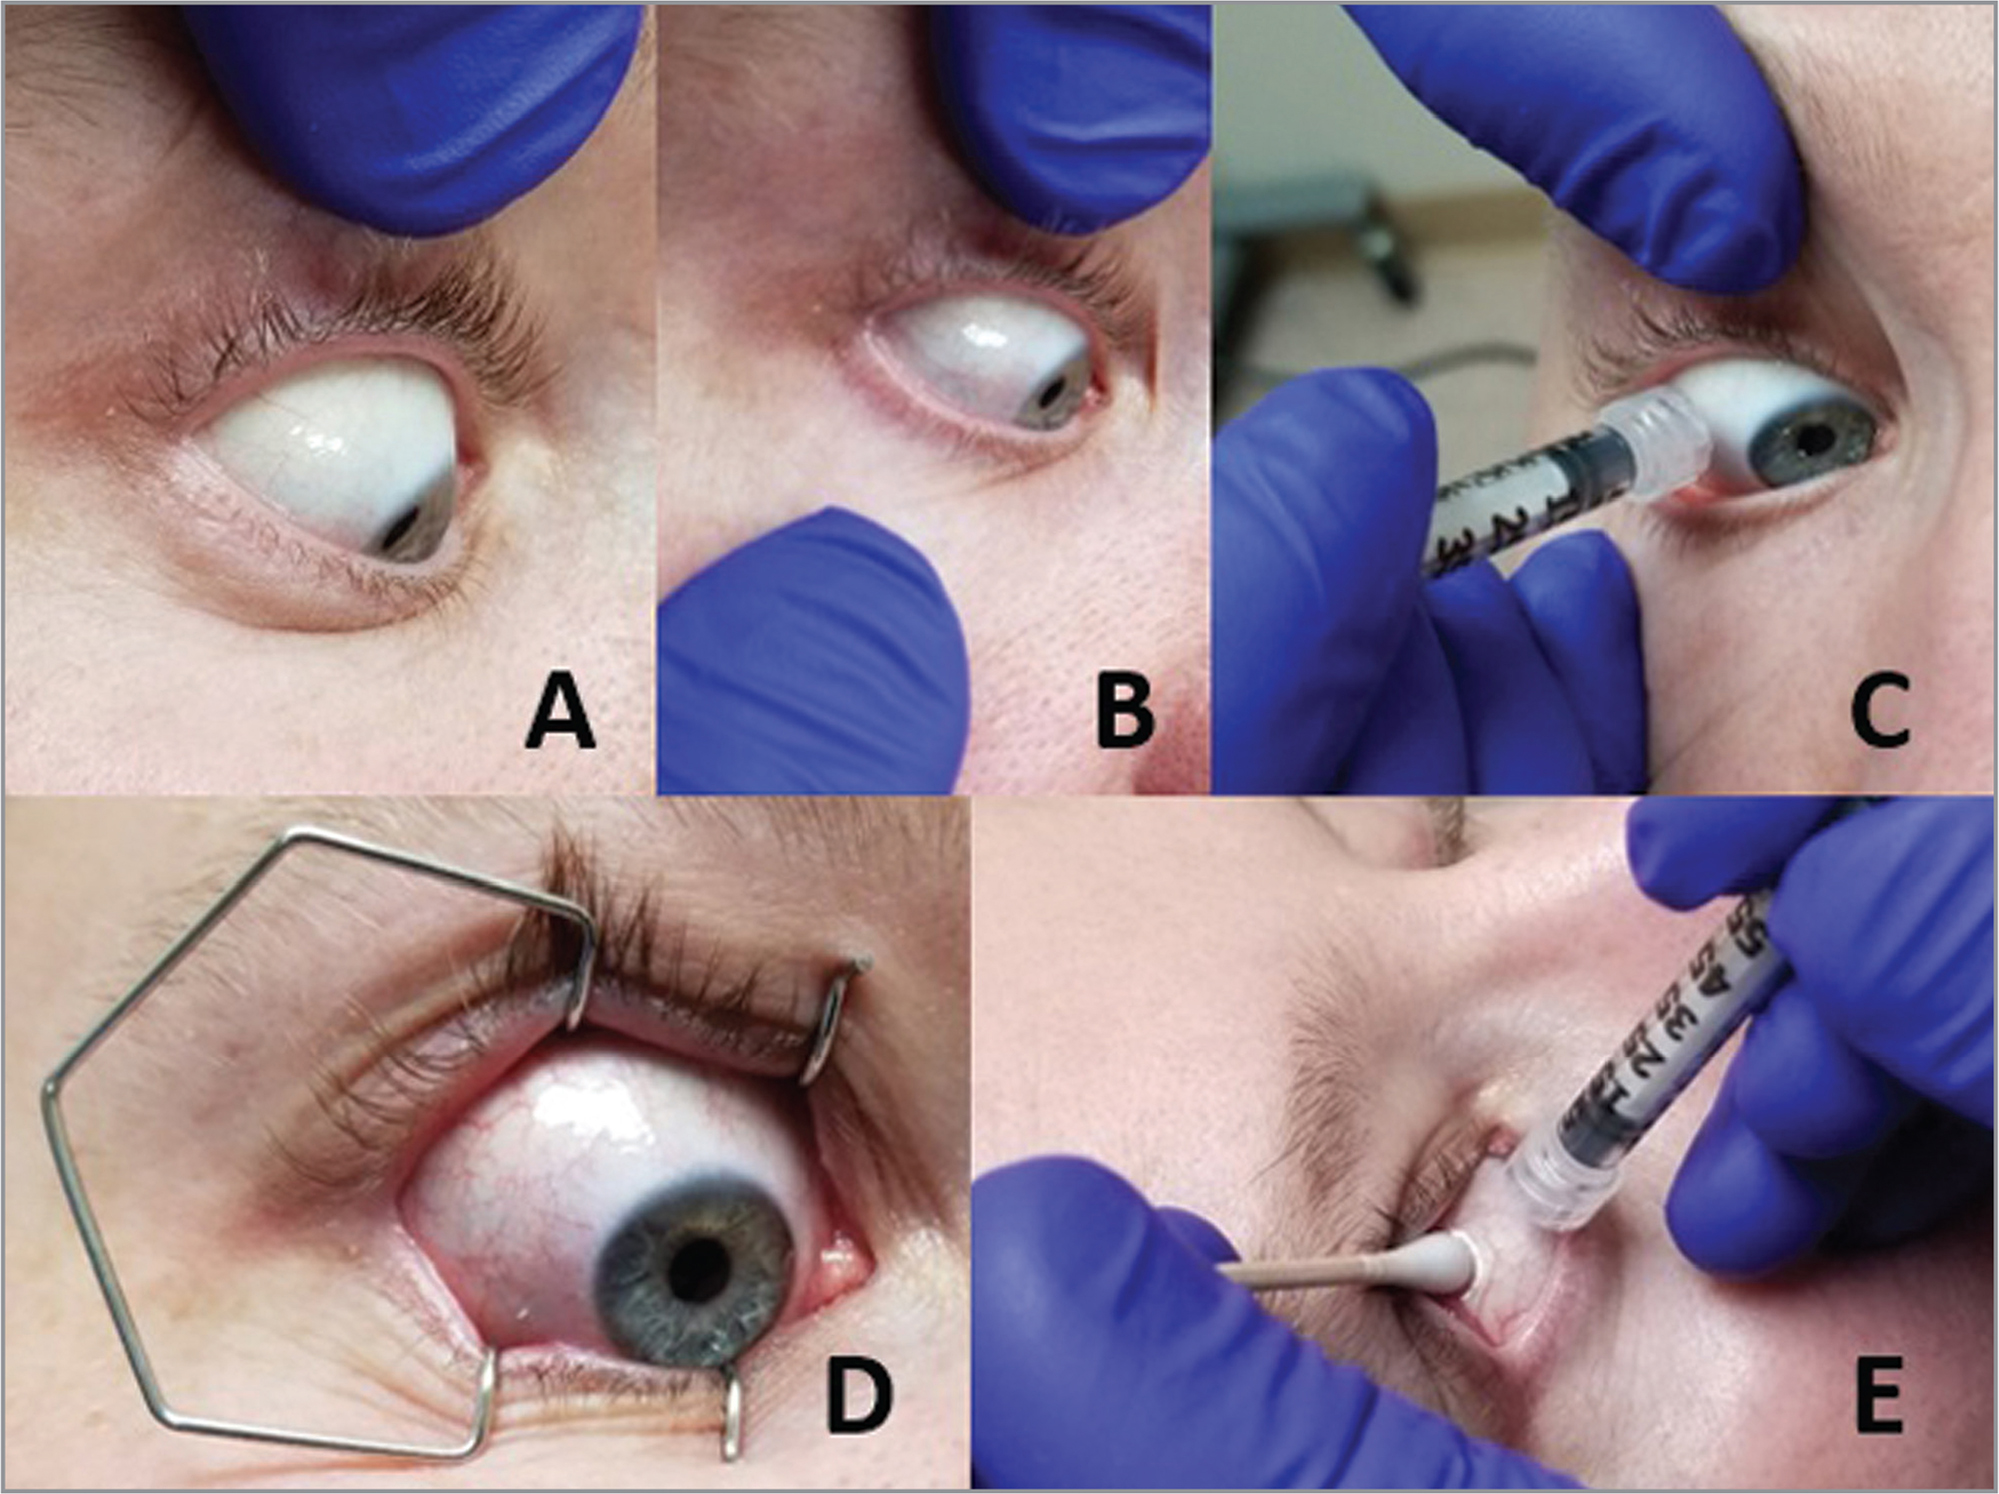 Methods for eyelid retraction during intravitreal injections include use of unimanual (A) or bimanual eyelid retraction (B), lid splinting (C), speculum (D), or cotton-tipped applicator eyelid retraction (E) techniques.